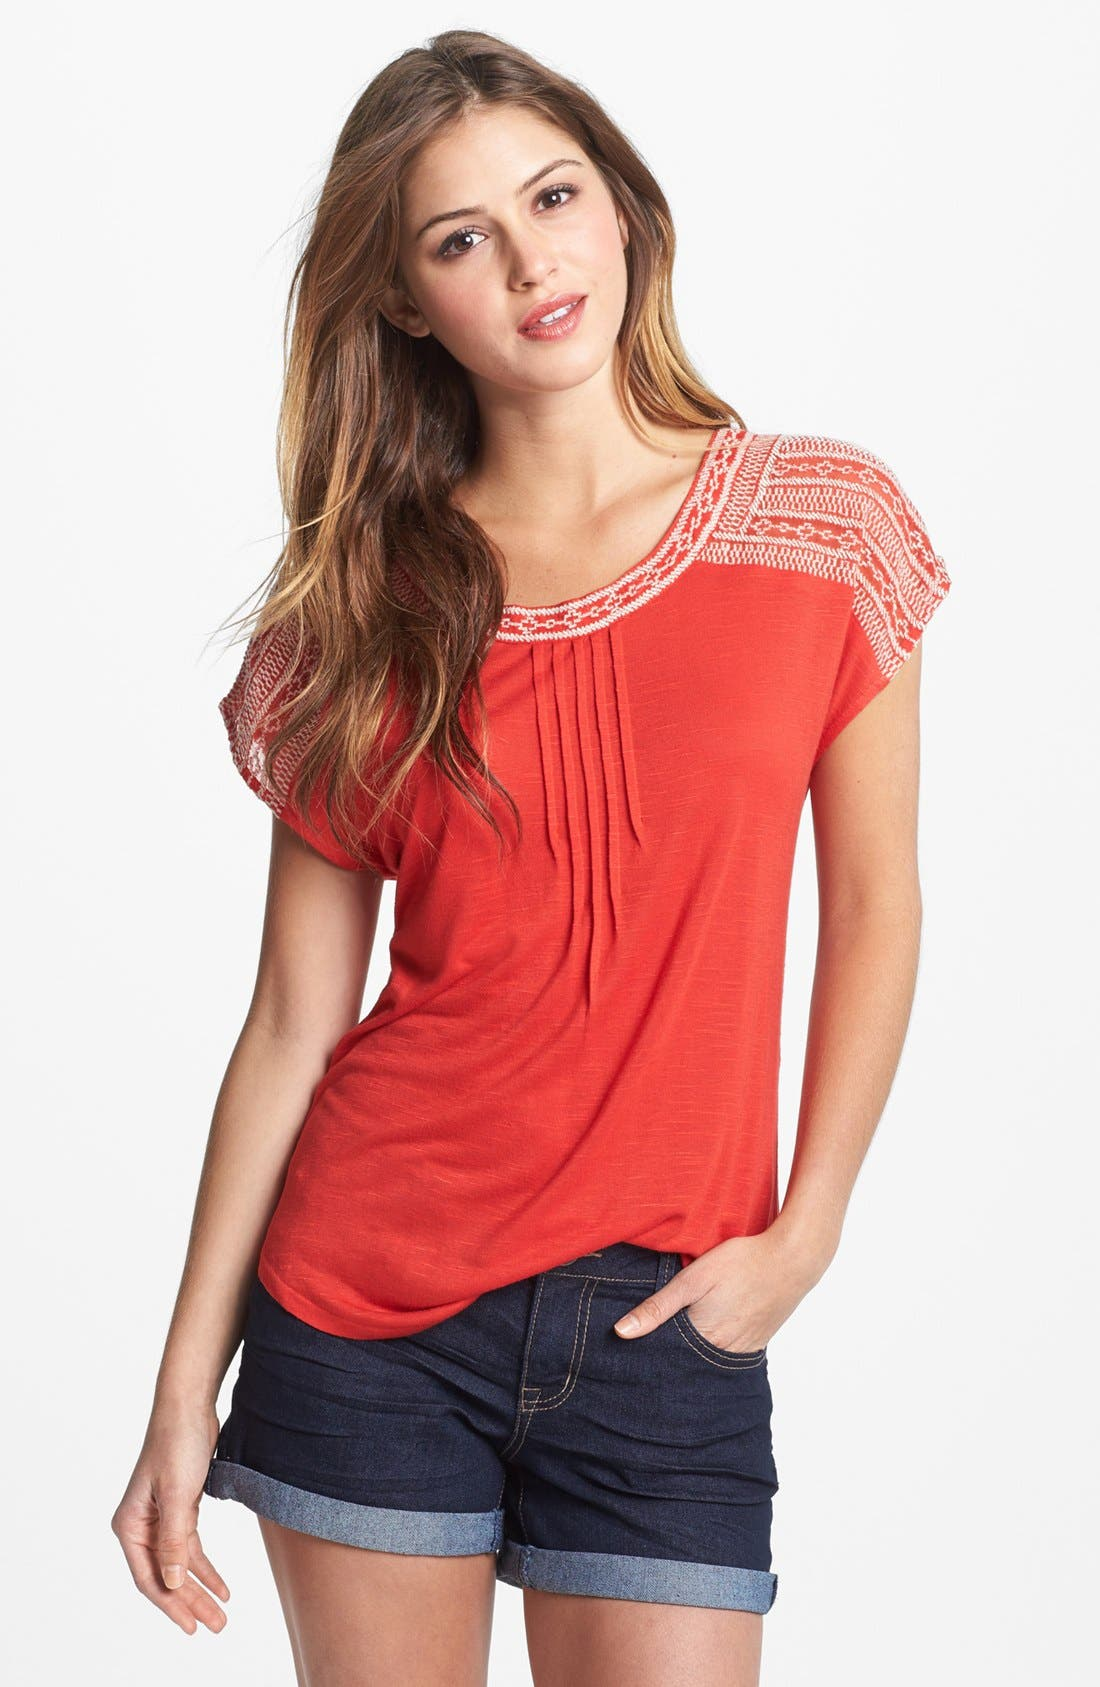 Alternate Image 1 Selected - Lucky Brand 'Adella' Embroidered Tee